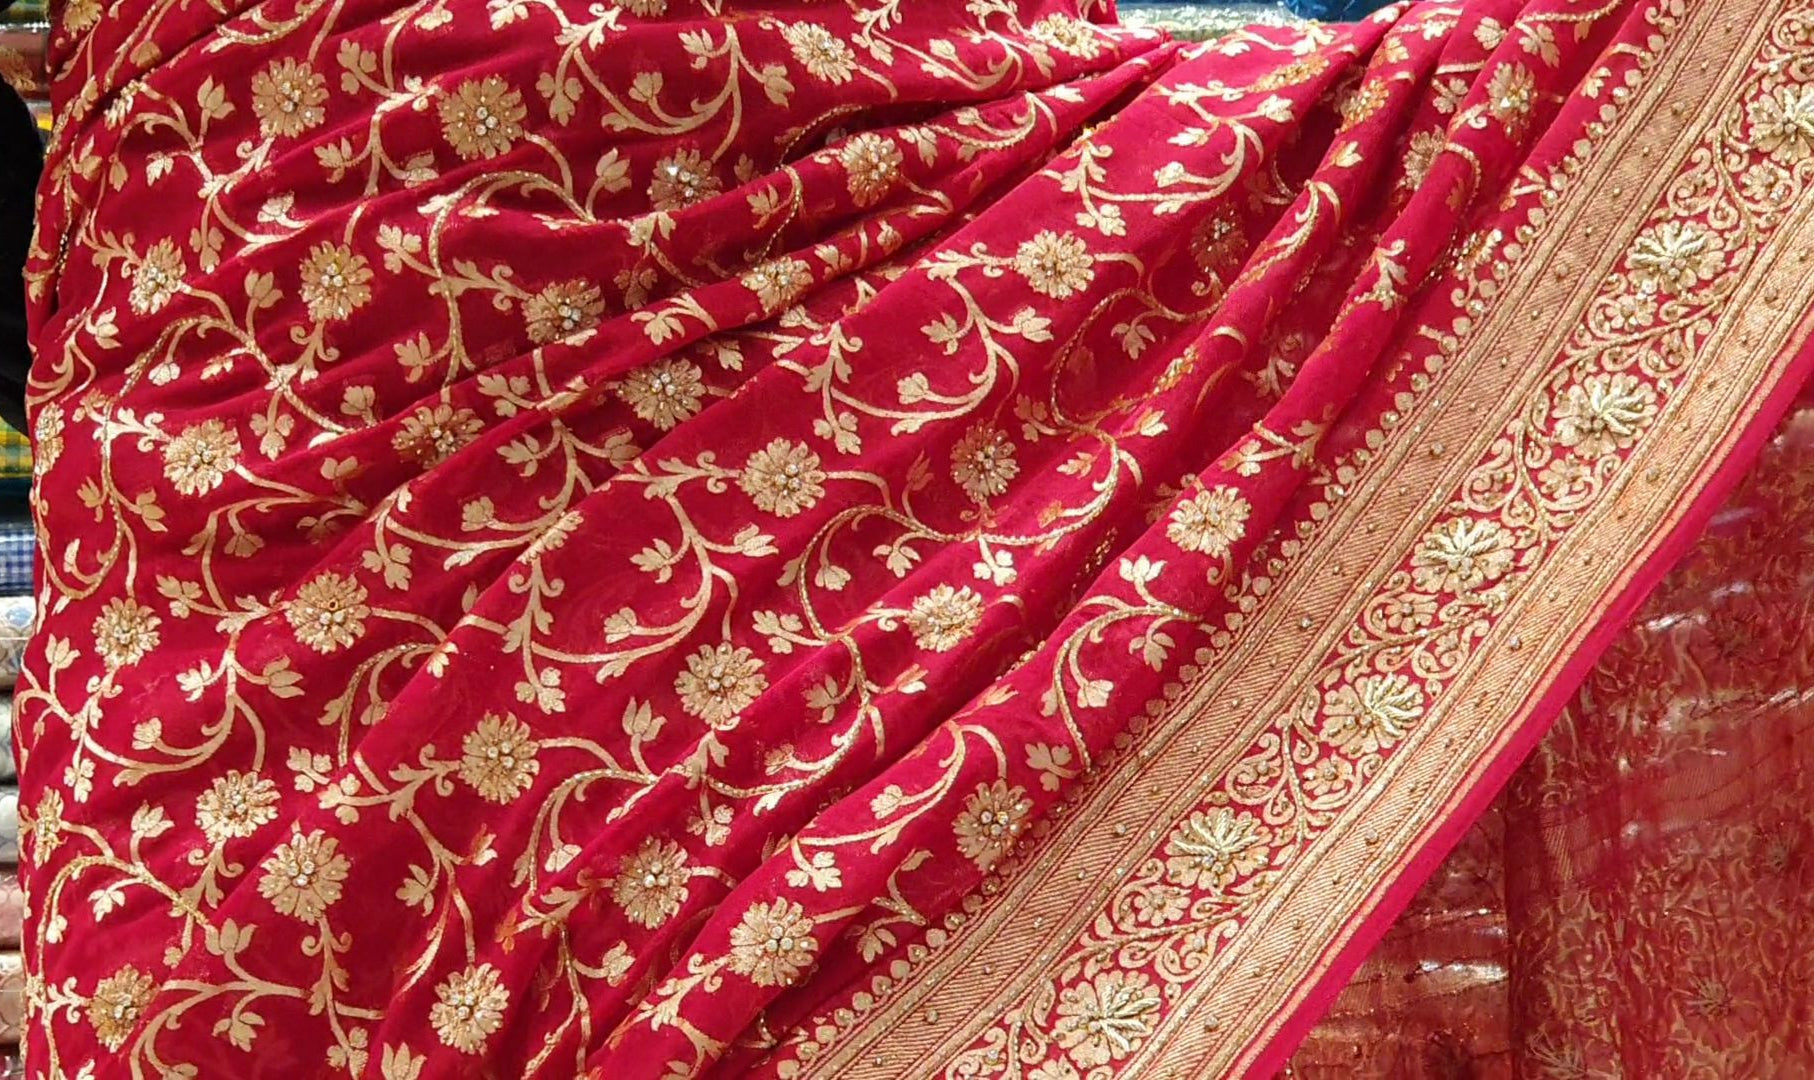 Designer Saree With Zardosi Handwork on Pure Chiffon Fabric